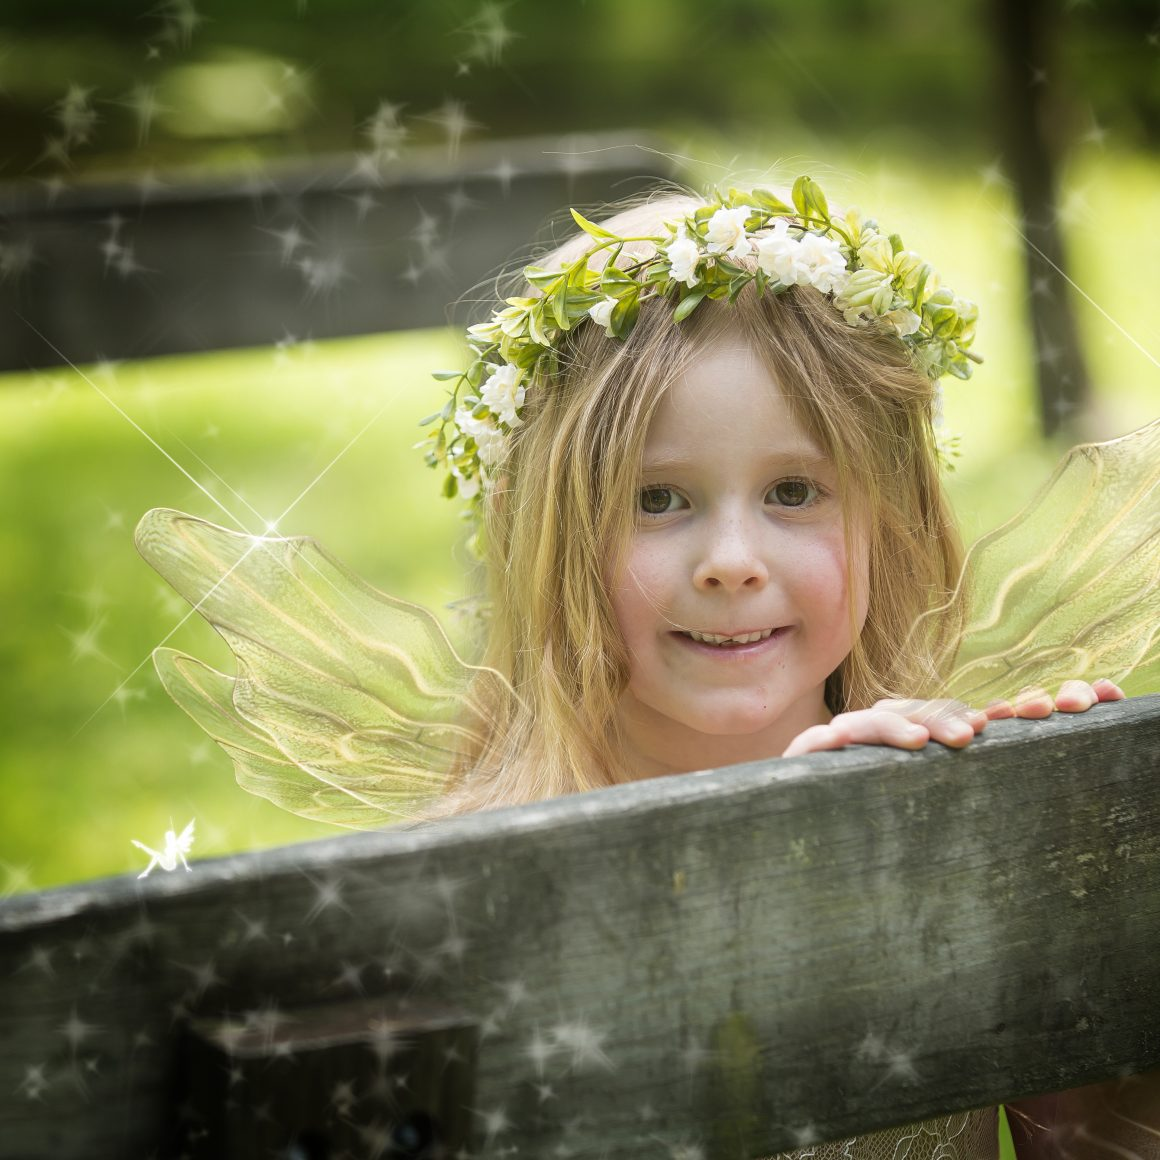 creative child portraits lehigh valley child photographer wind gap bangor easton kid photos photographer